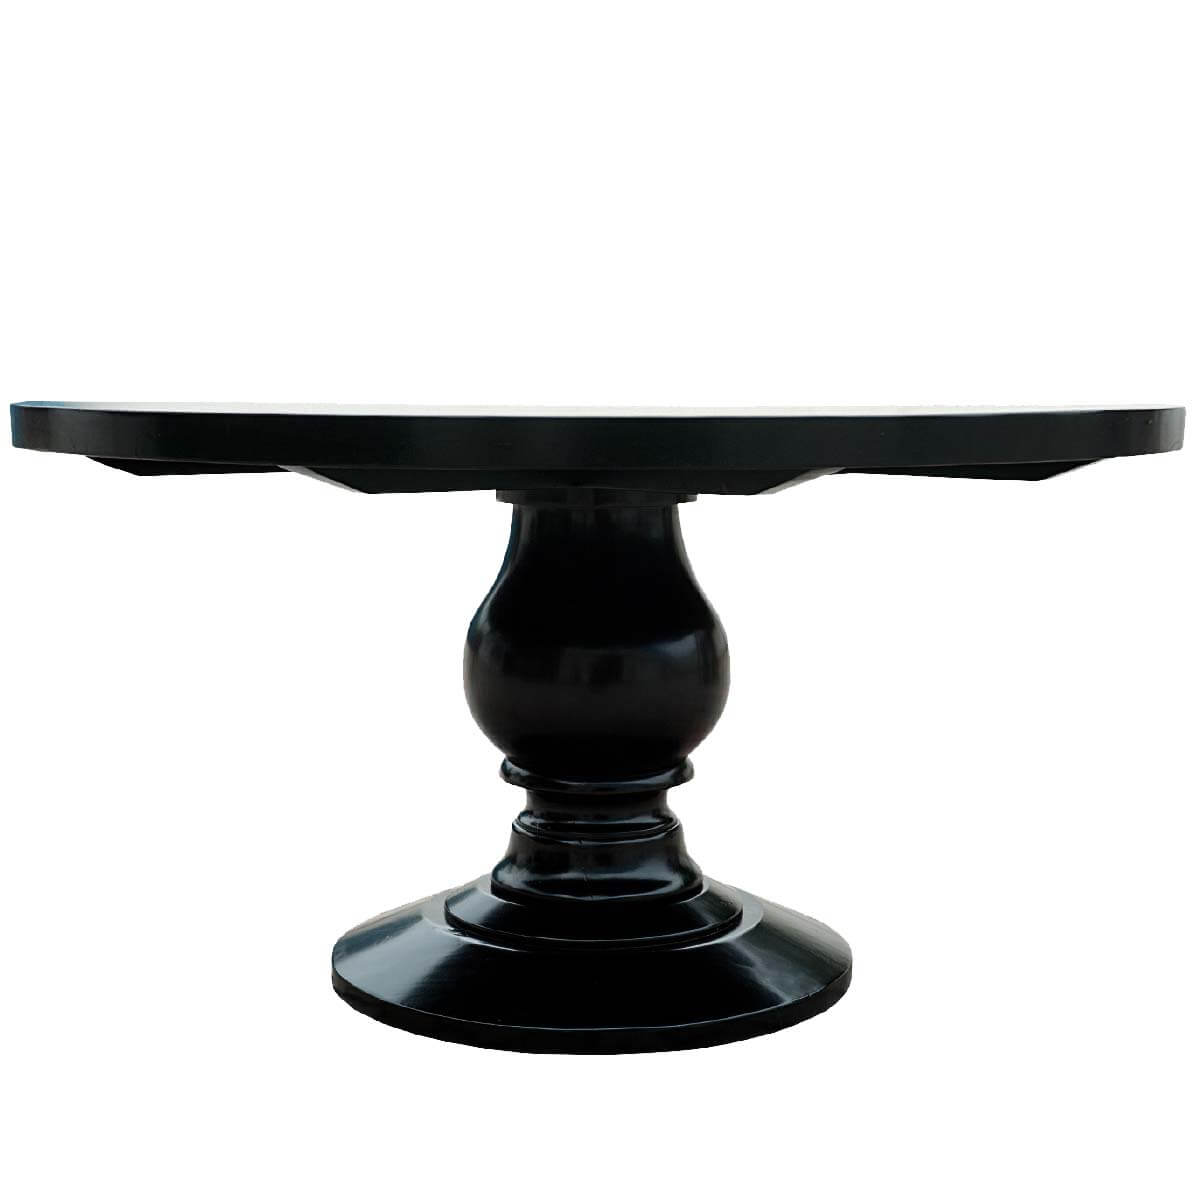 By Room Dining Room Dining Tables Sutton Black Baluster Pedestal